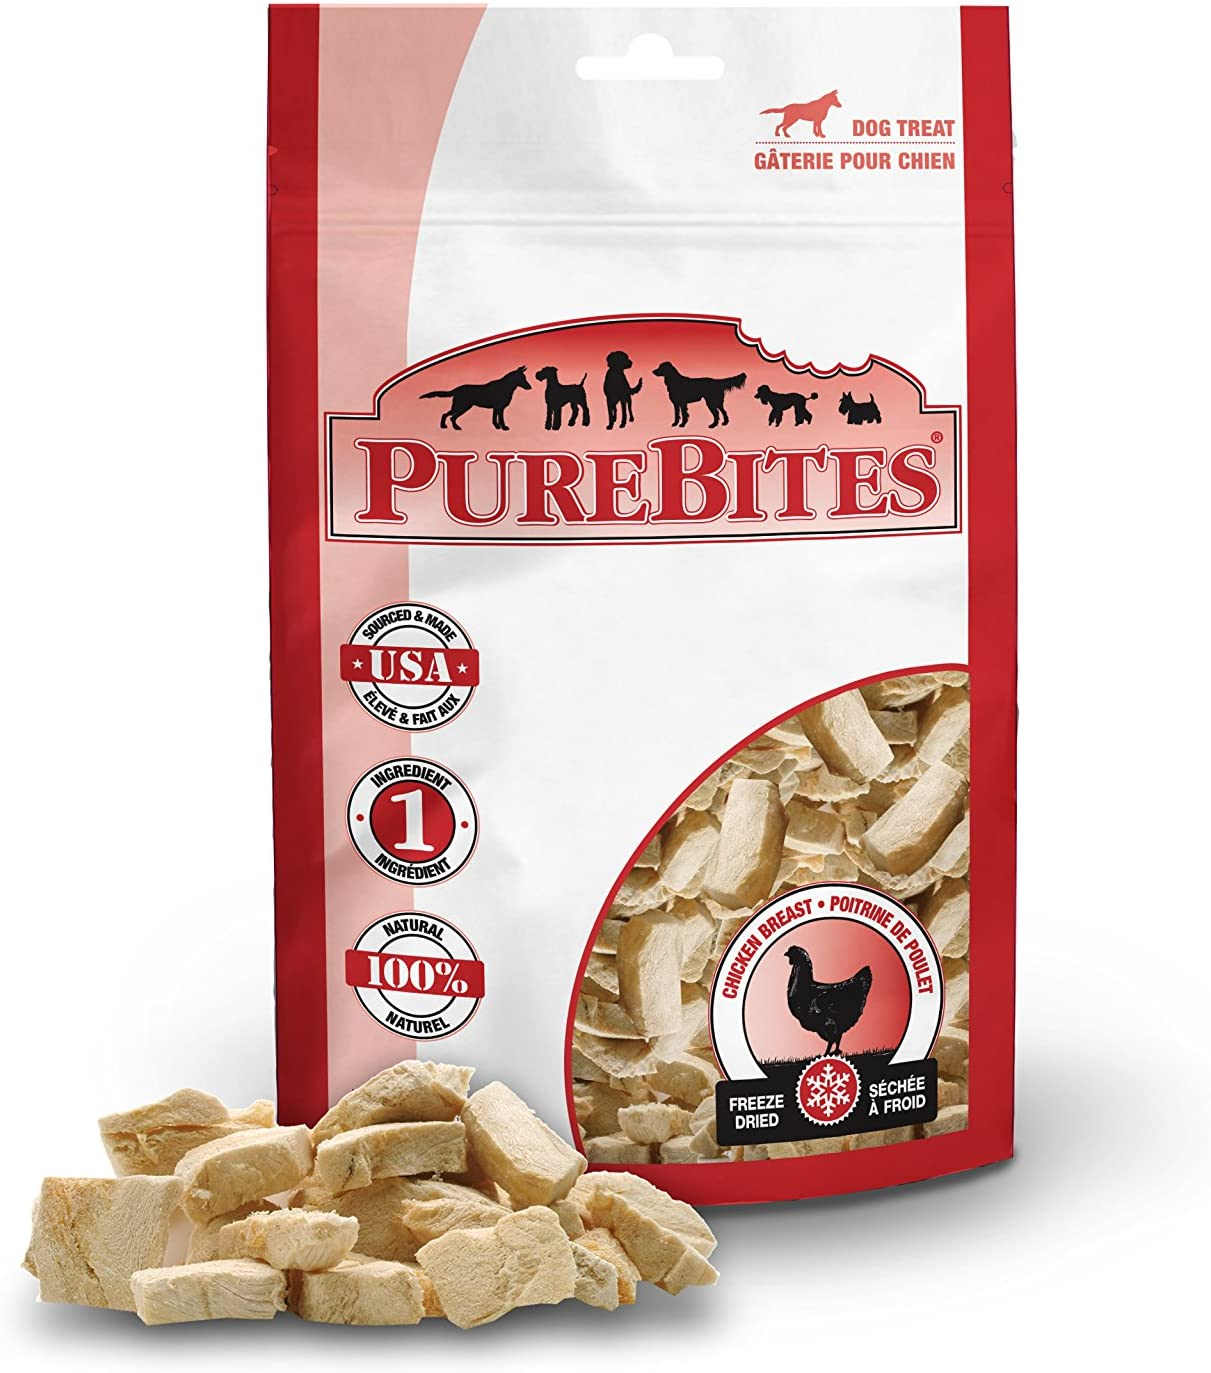 Purebites Chicken Breast For Dogs, 6.2Oz 175G – Value Size, 12 Pack